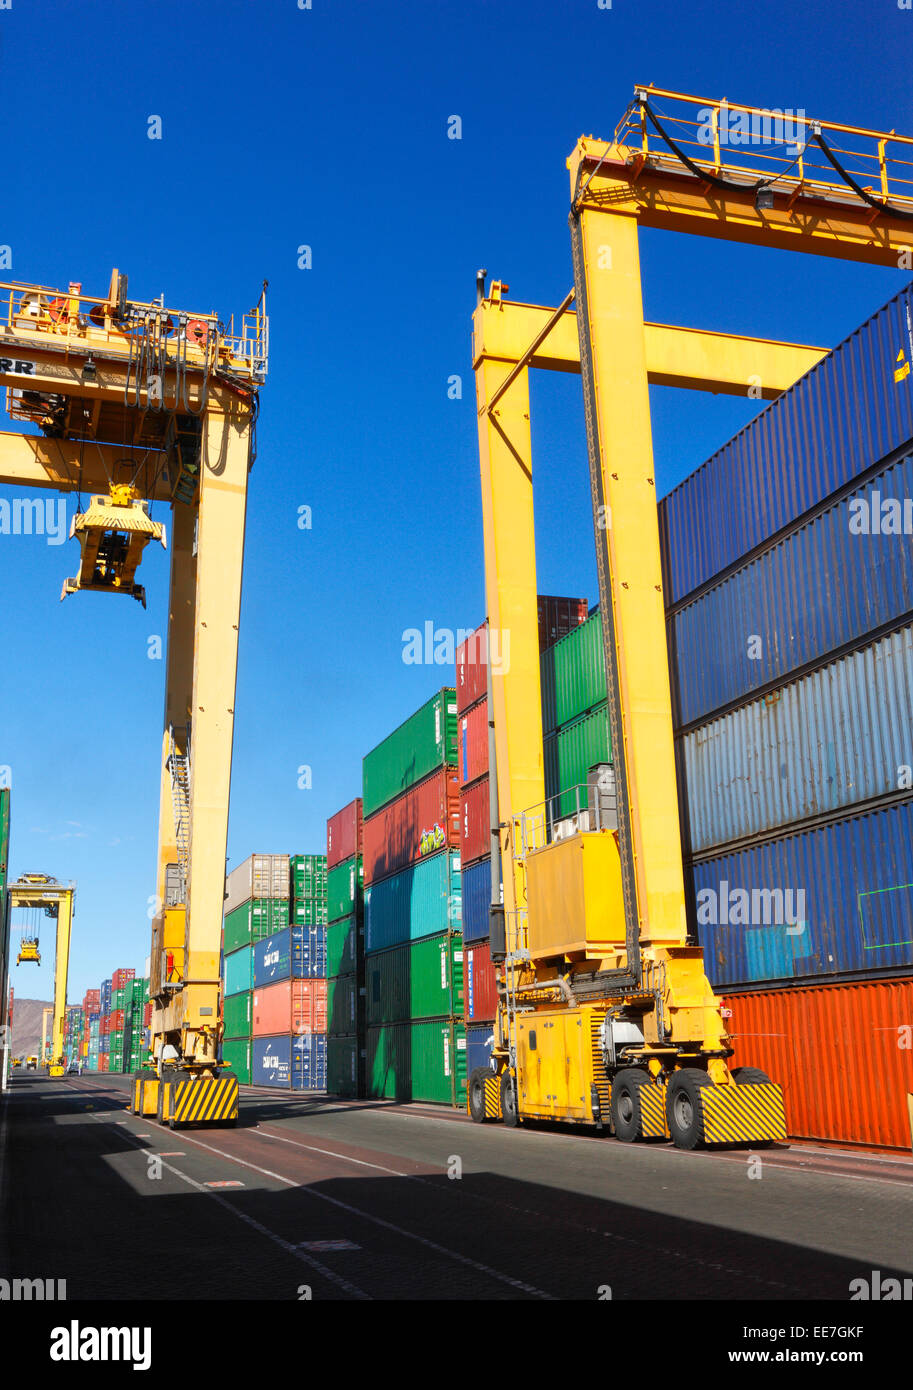 Commercial dock Khor Fakkan, with yellow crane and colorful containers - Stock Image